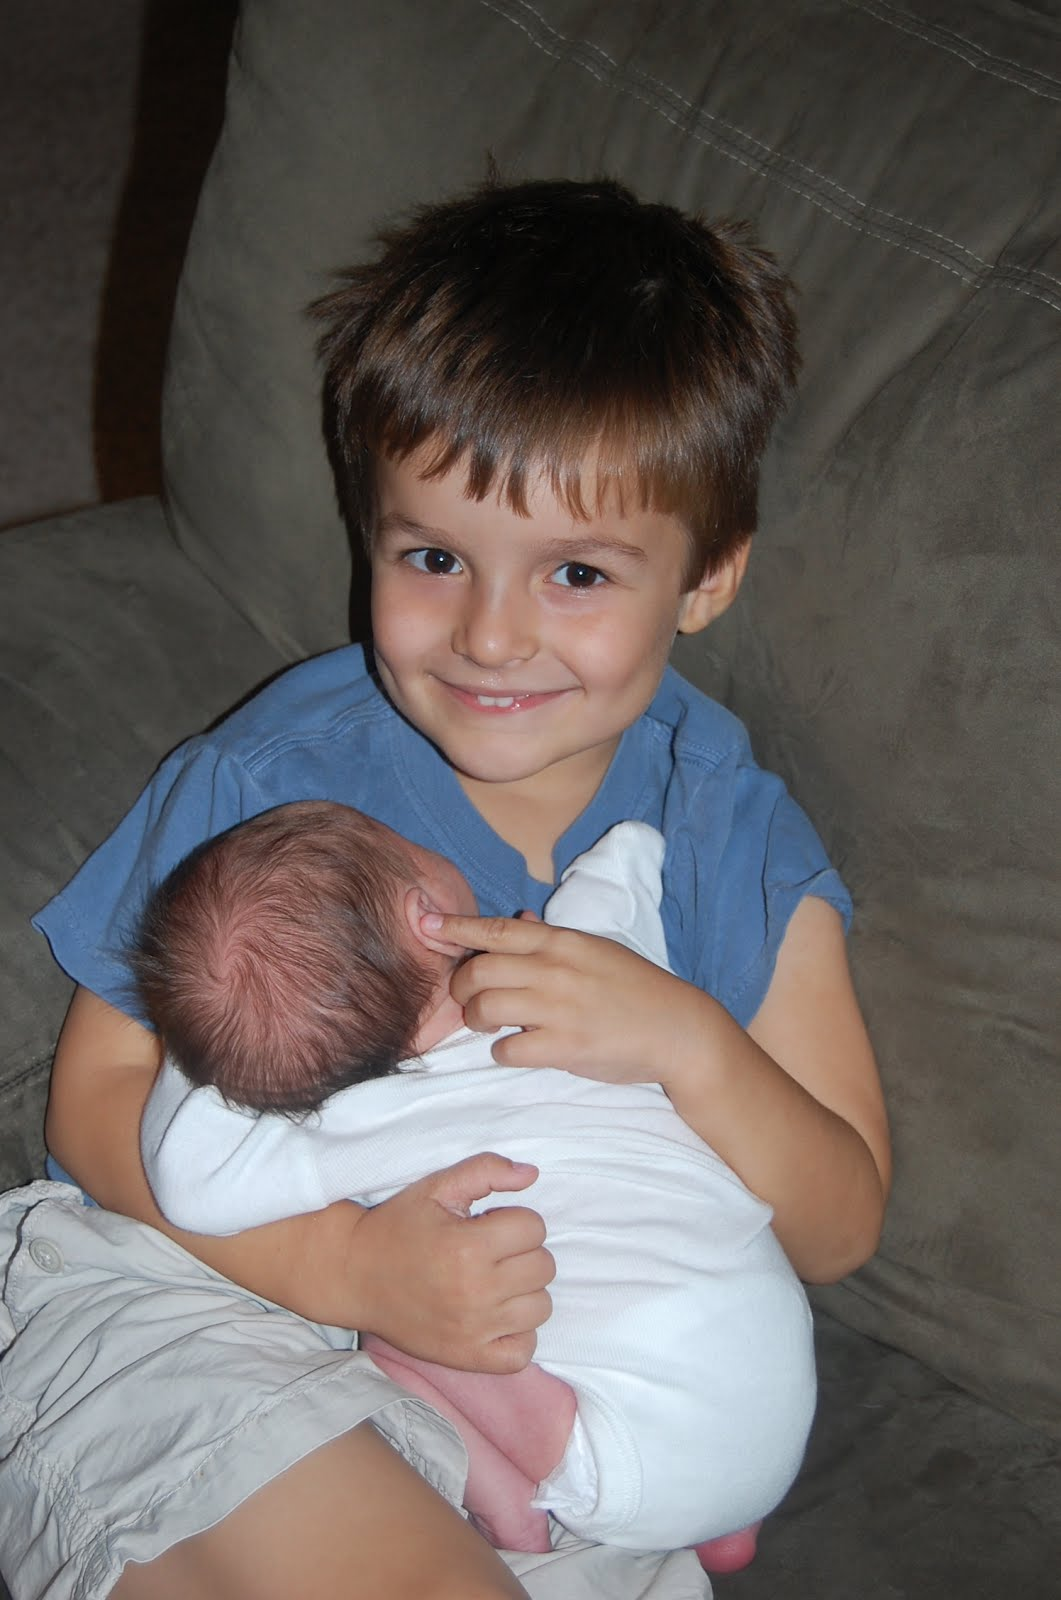 Luke continues to be an amazing big brother! (So does Jack!)